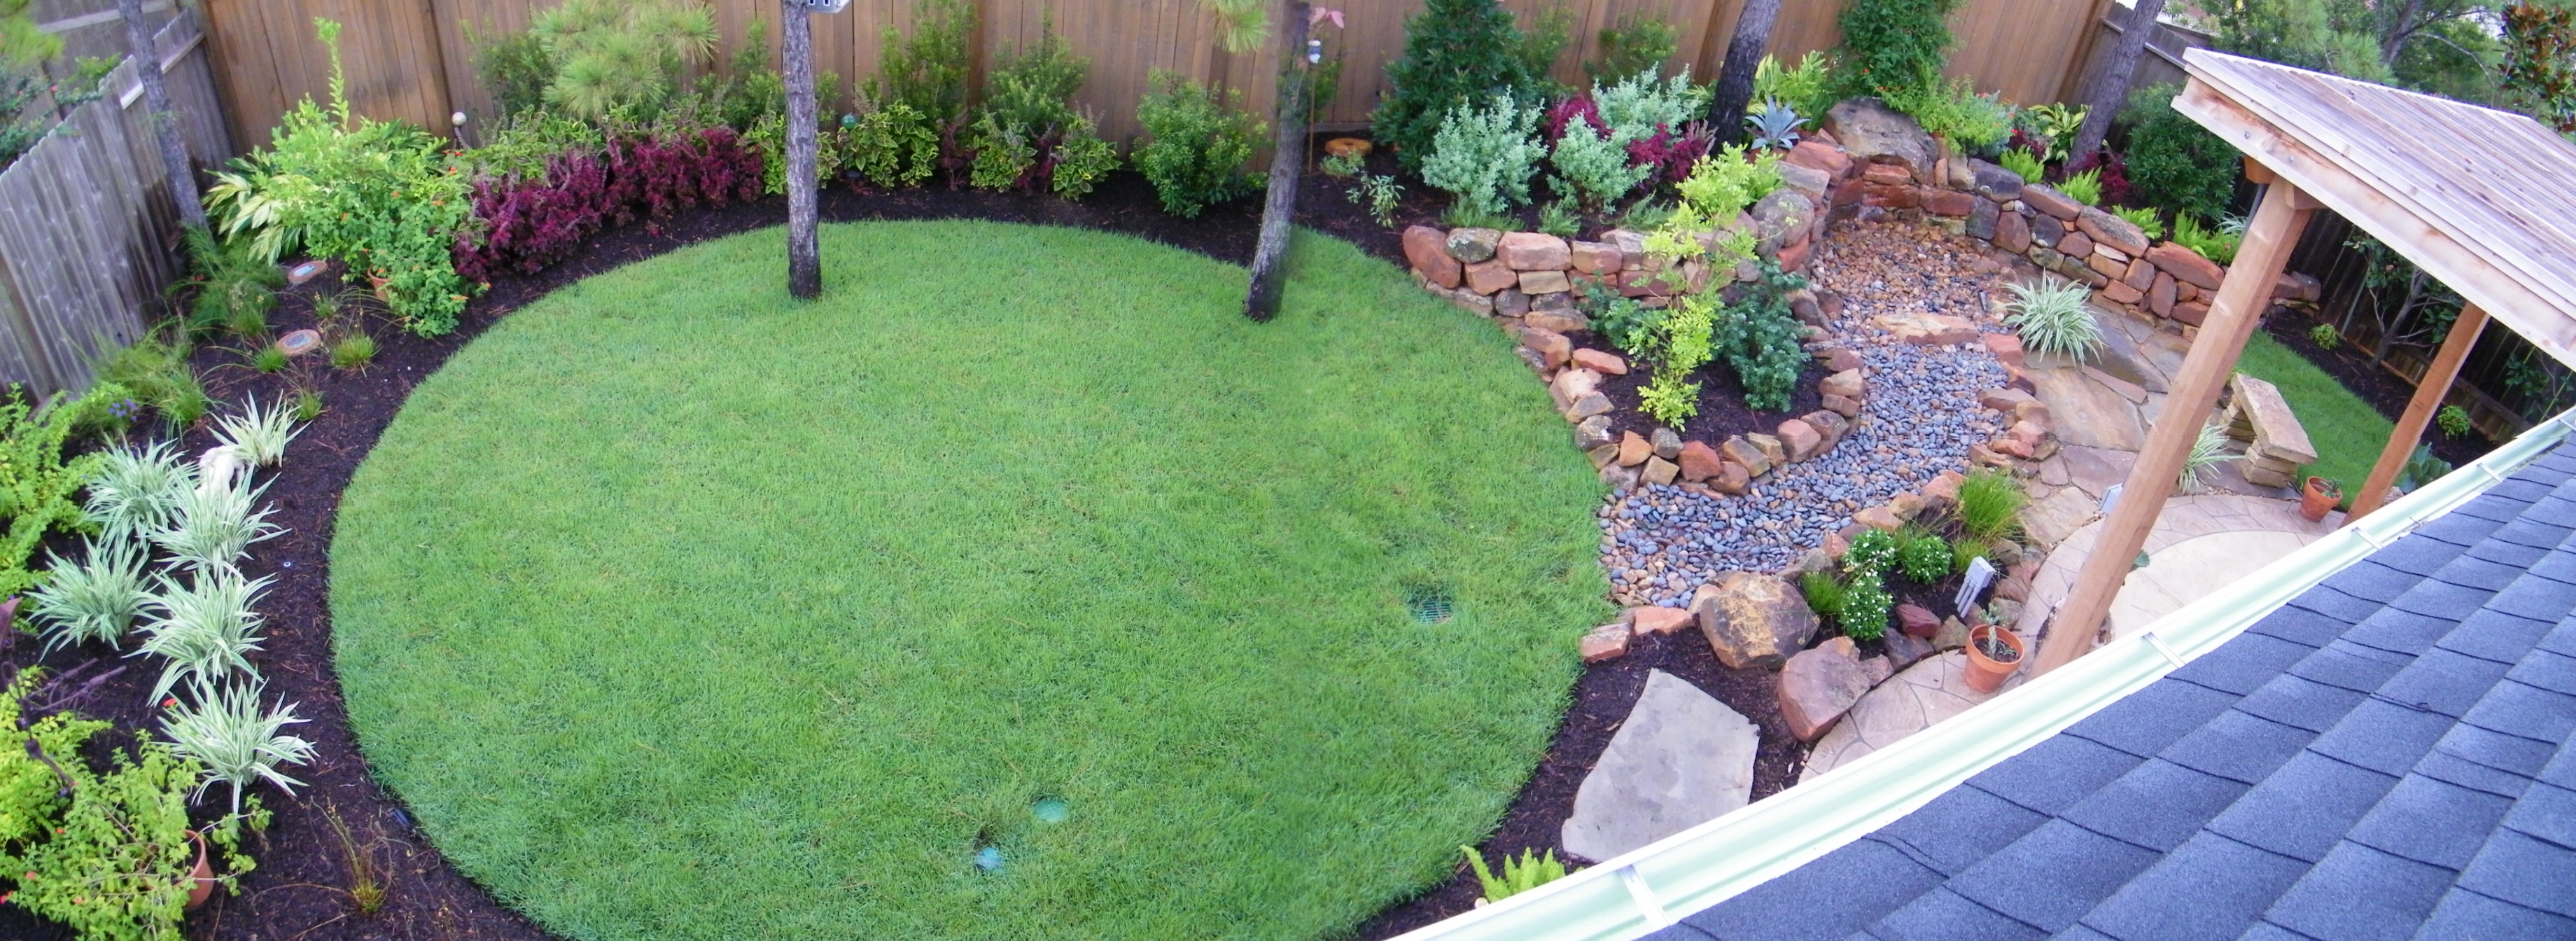 landscaping_12